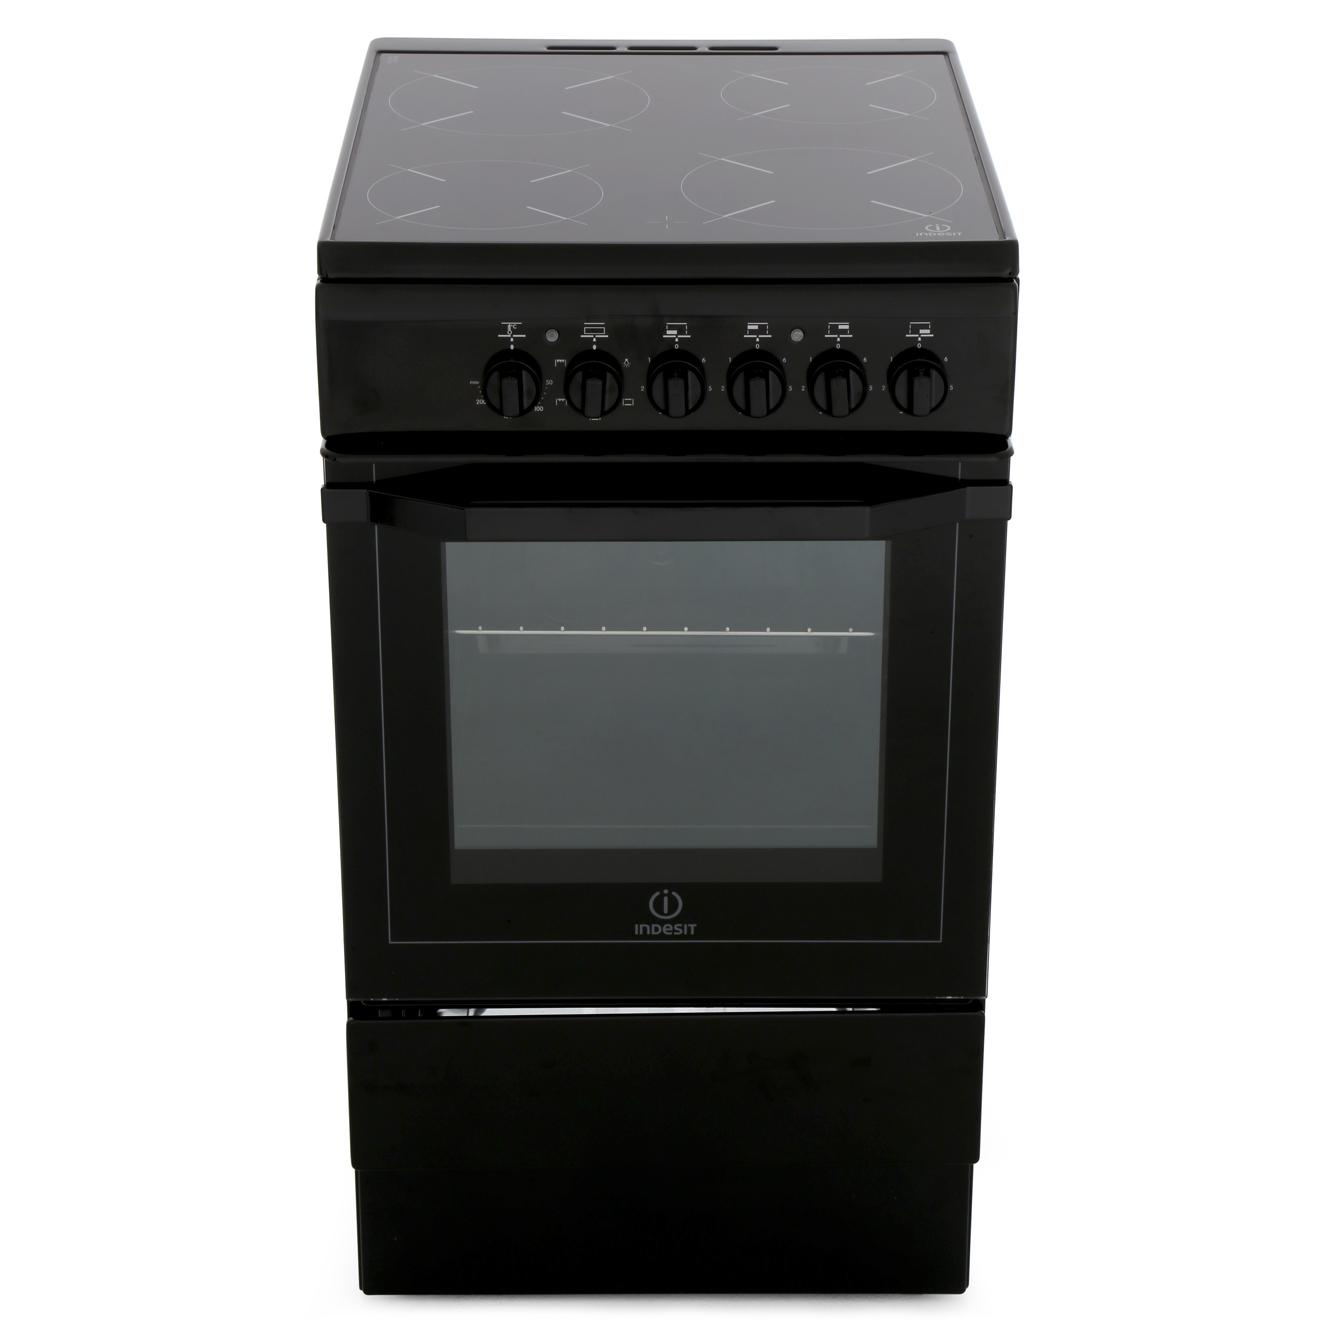 Indesit I5VSHK Ceramic Electric Cooker with Single Oven